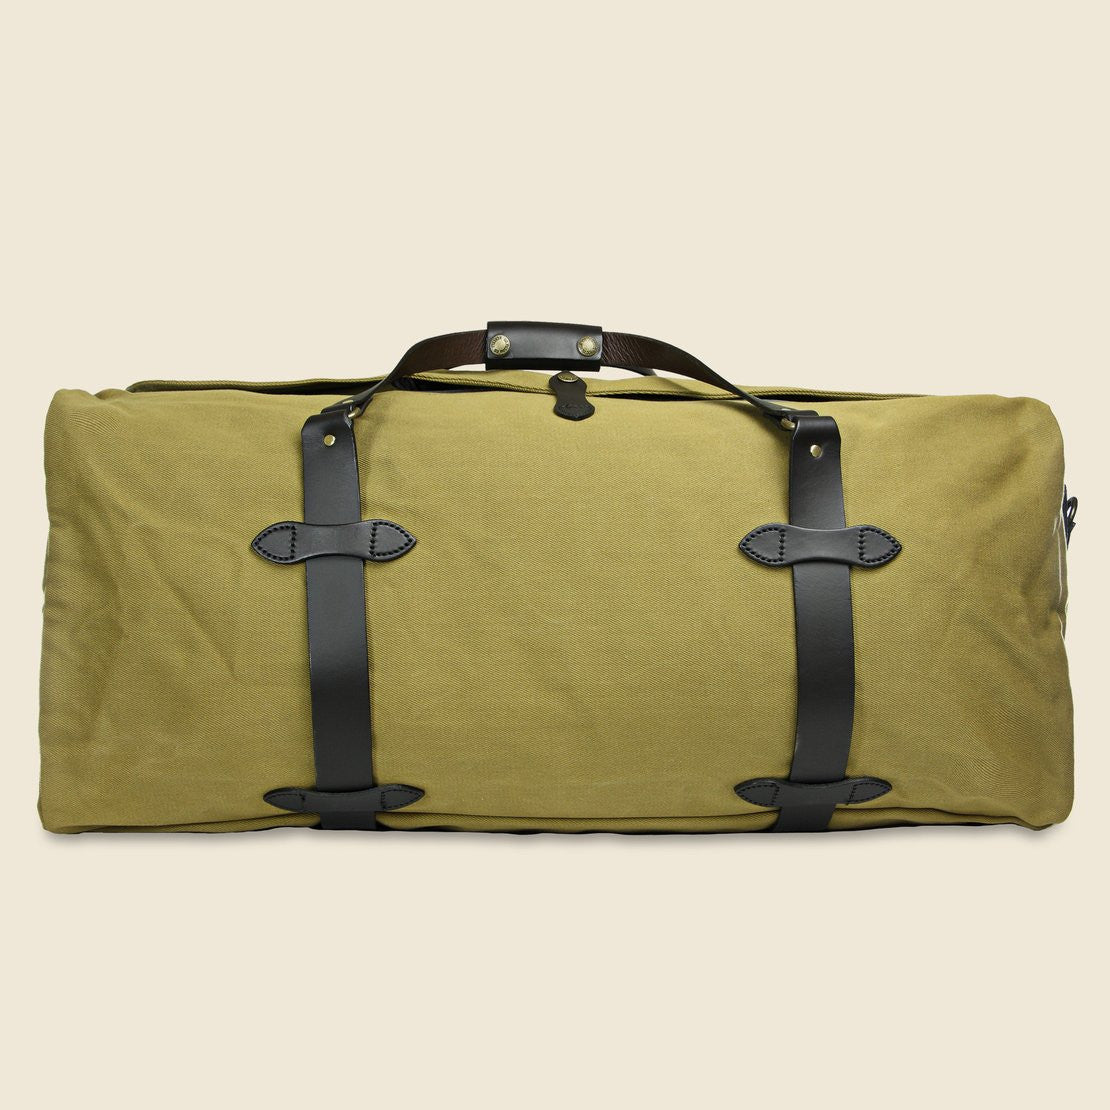 Filson Large Duffle Bag - Tan